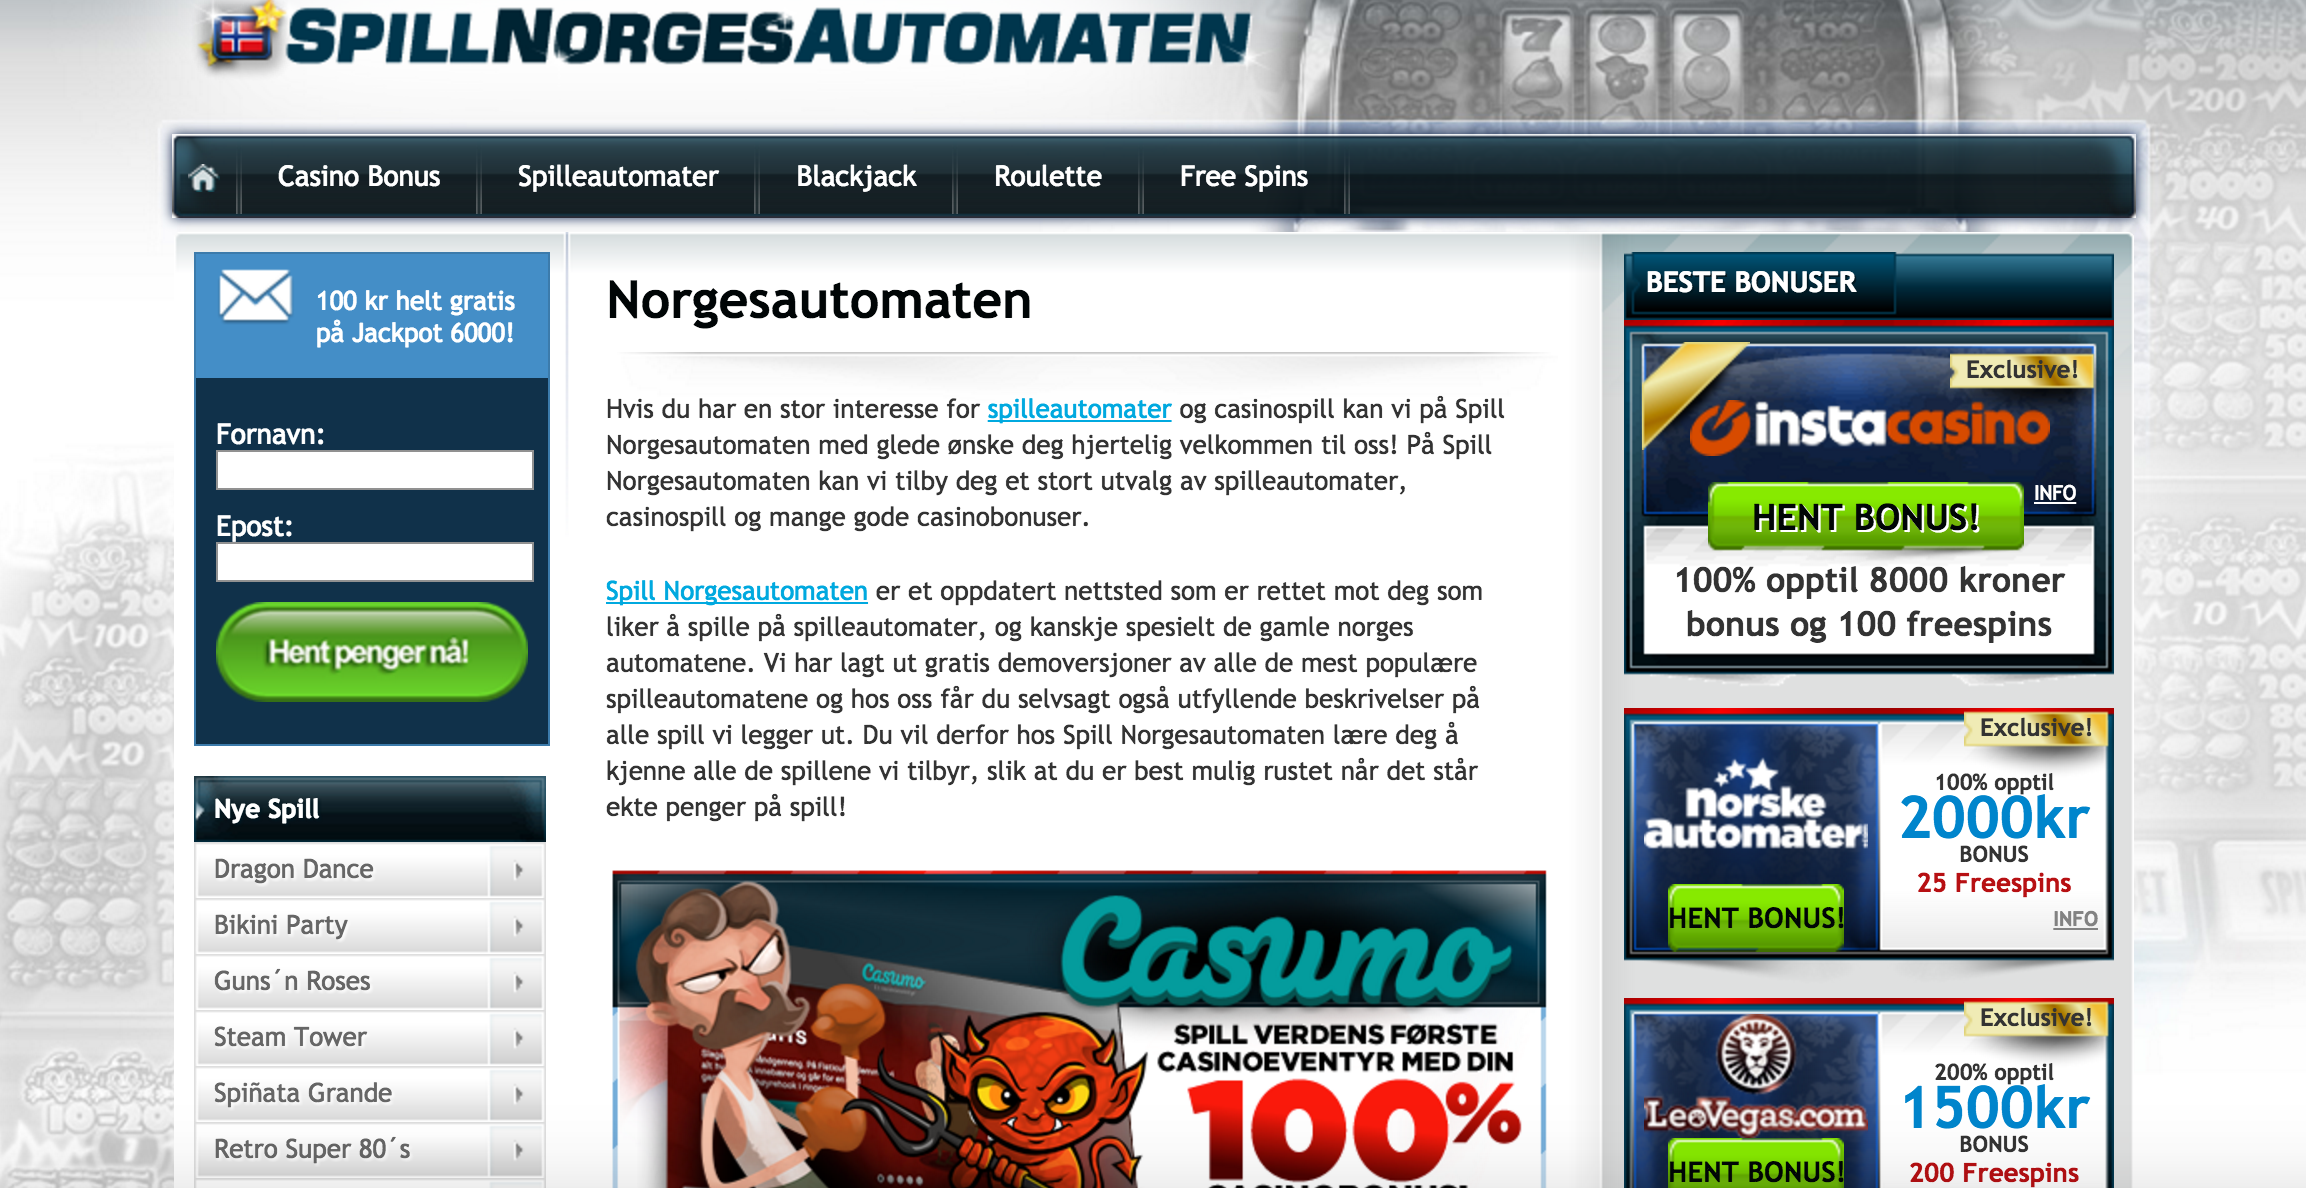 Best Online Casino Games at Spillnorgesautomaten